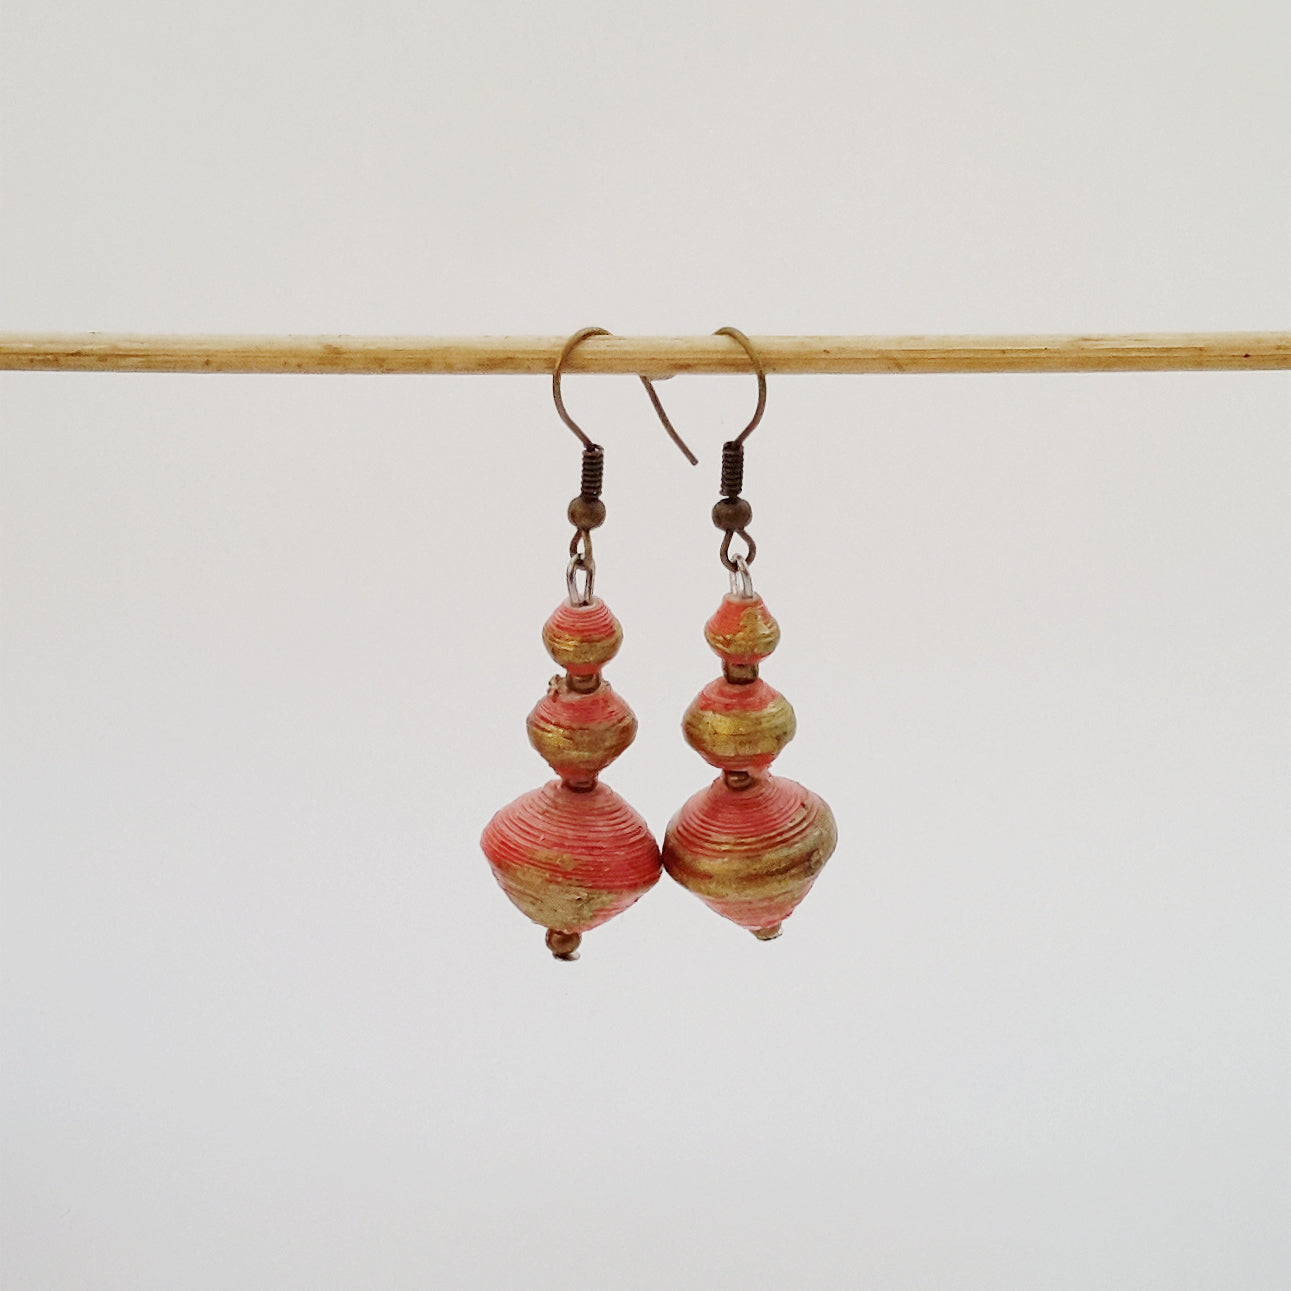 Orange hand made ethical design paper bead earrings made out of recycled paper in Uganda by principles of fair trade, ethical and sustainable fashion, empowering women of post war area, by Finnish / Scandinavian brand, Agulu Paper Beads. Eettiset oranssit käsintehdyt design korvakorut, joka on tehty kierrätyspaperista reilun kaupan periaattein työllistämällä kehitysmaan nasia.